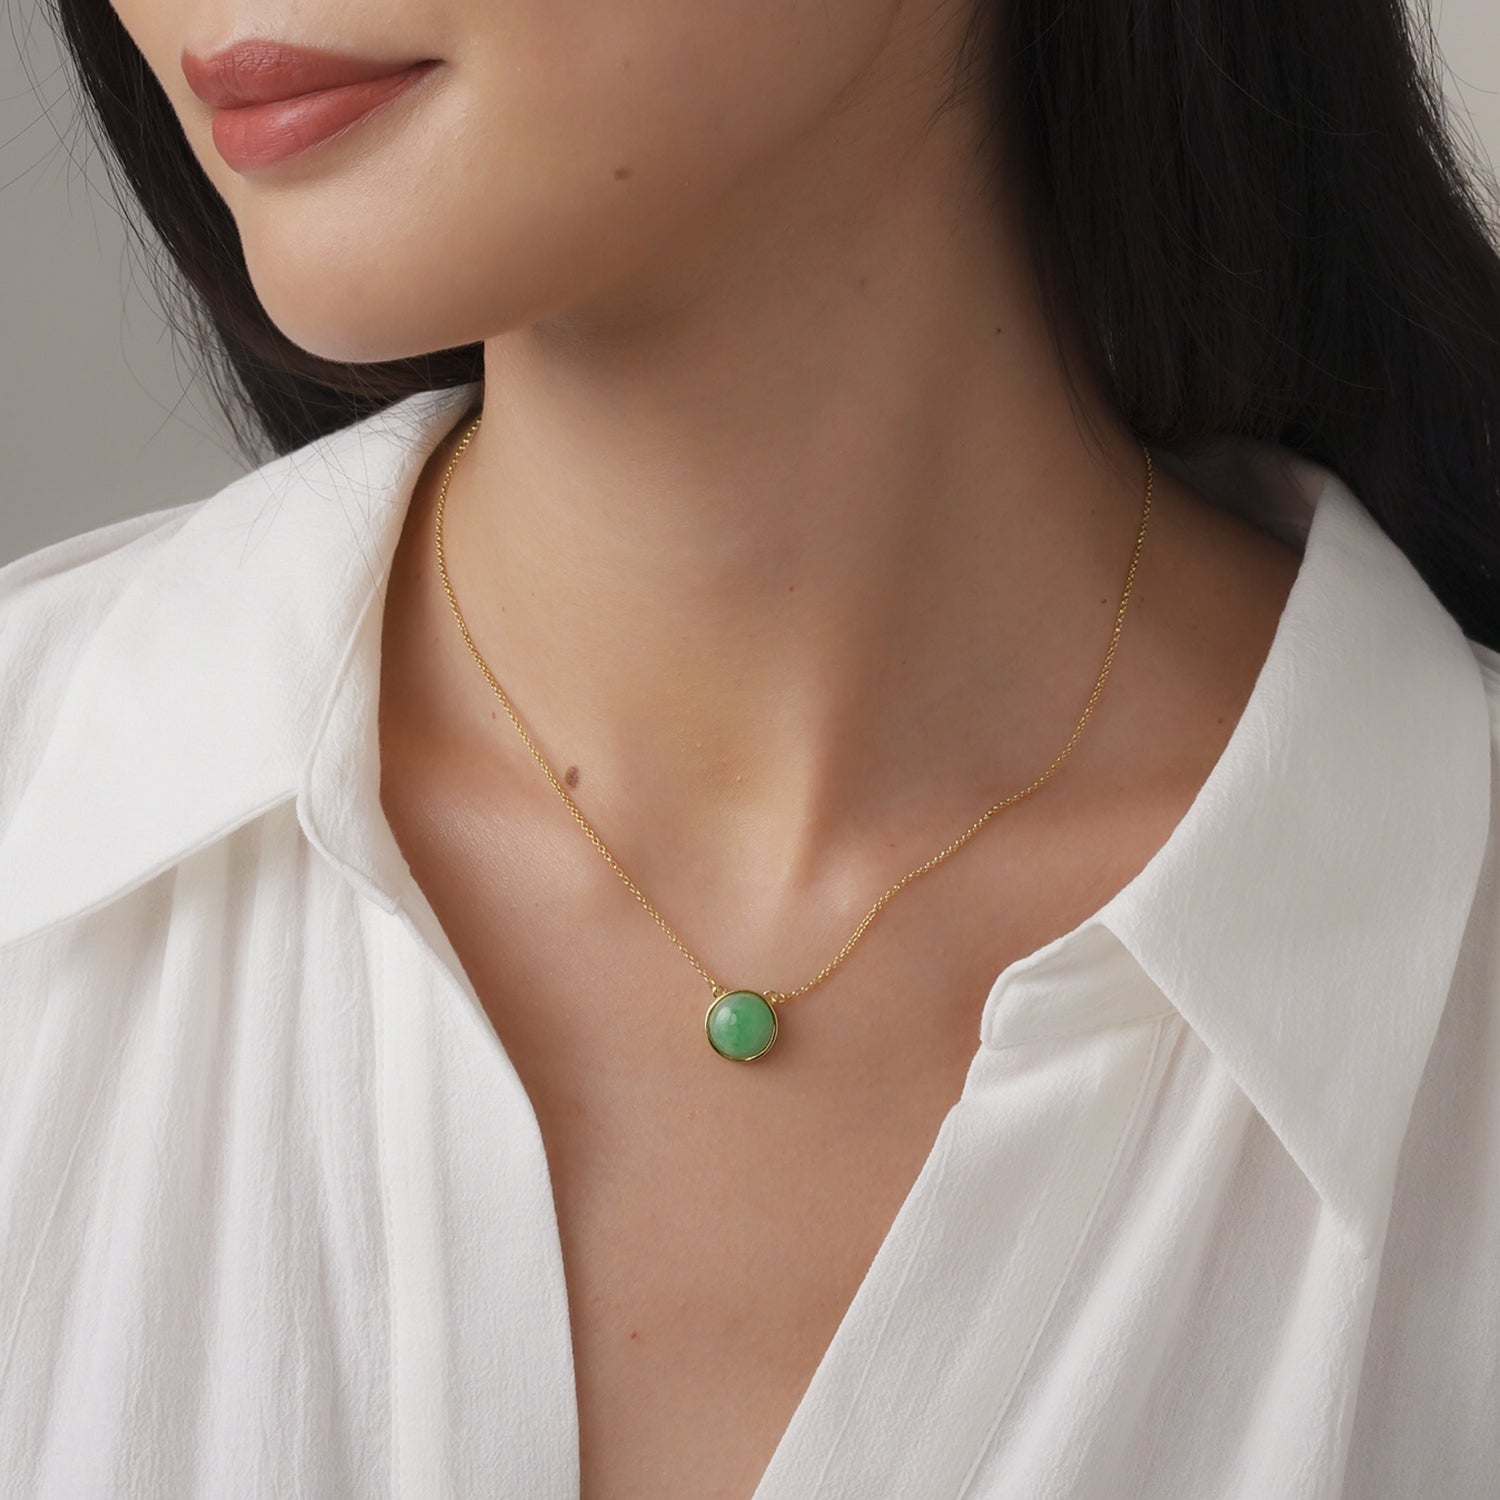 EDEN 悅 Necklace in Apple Green Jade